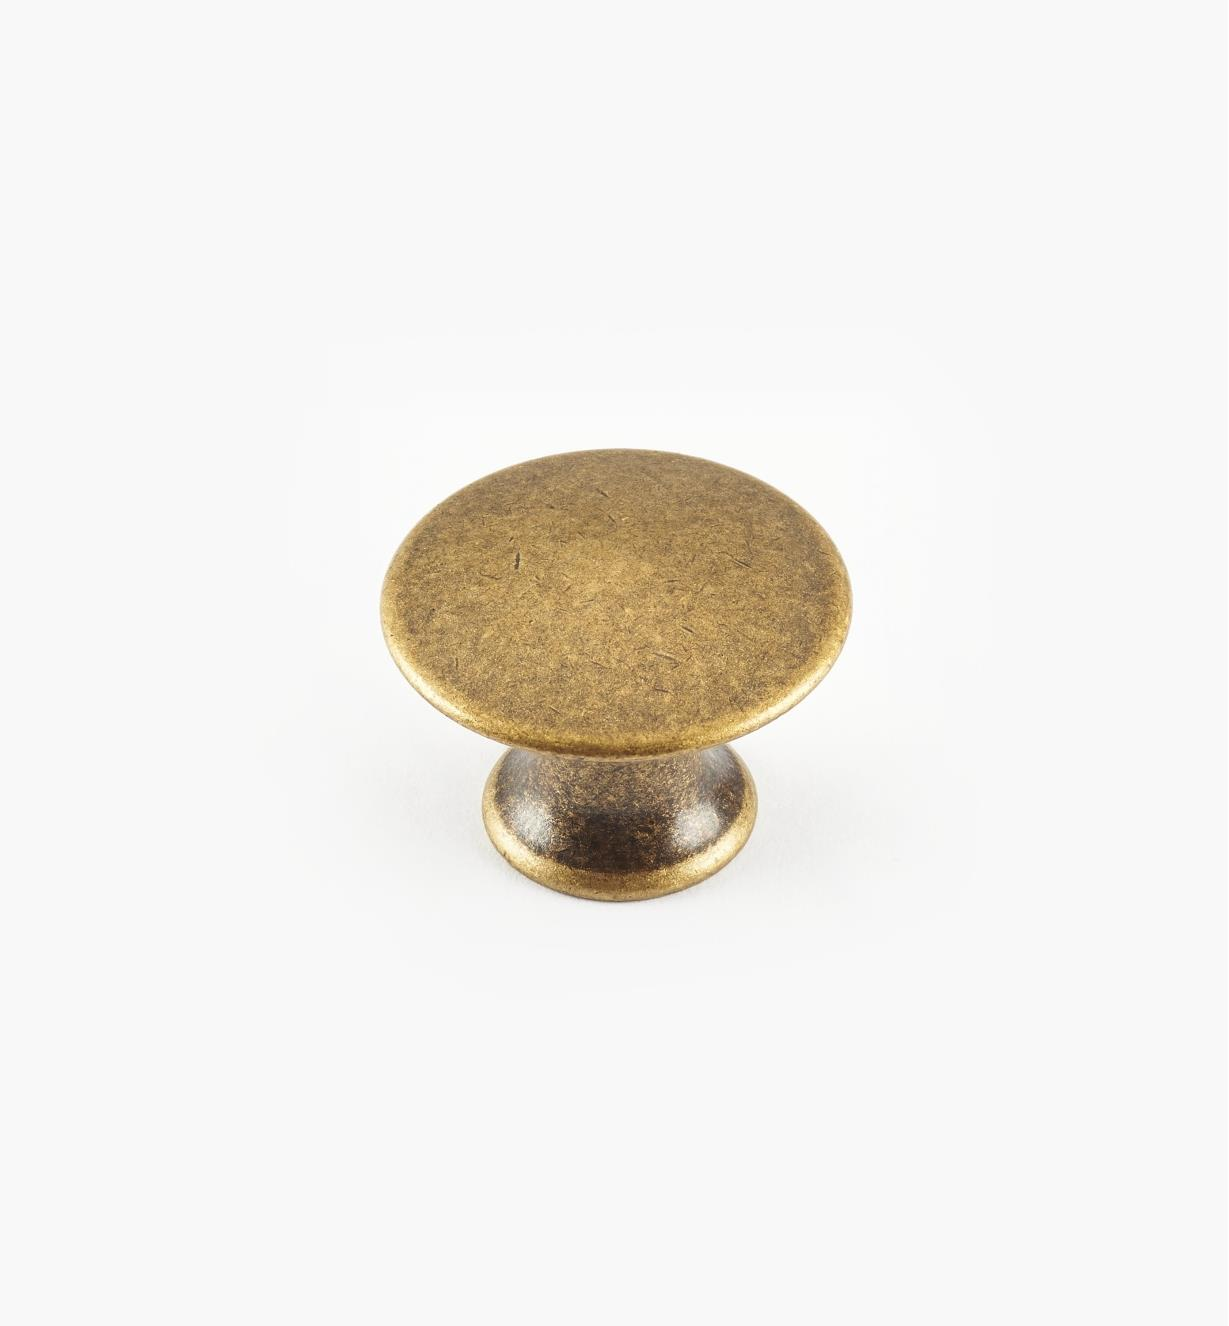 01A0220 - 20mm x 15mmAntique Brass Plain Knob